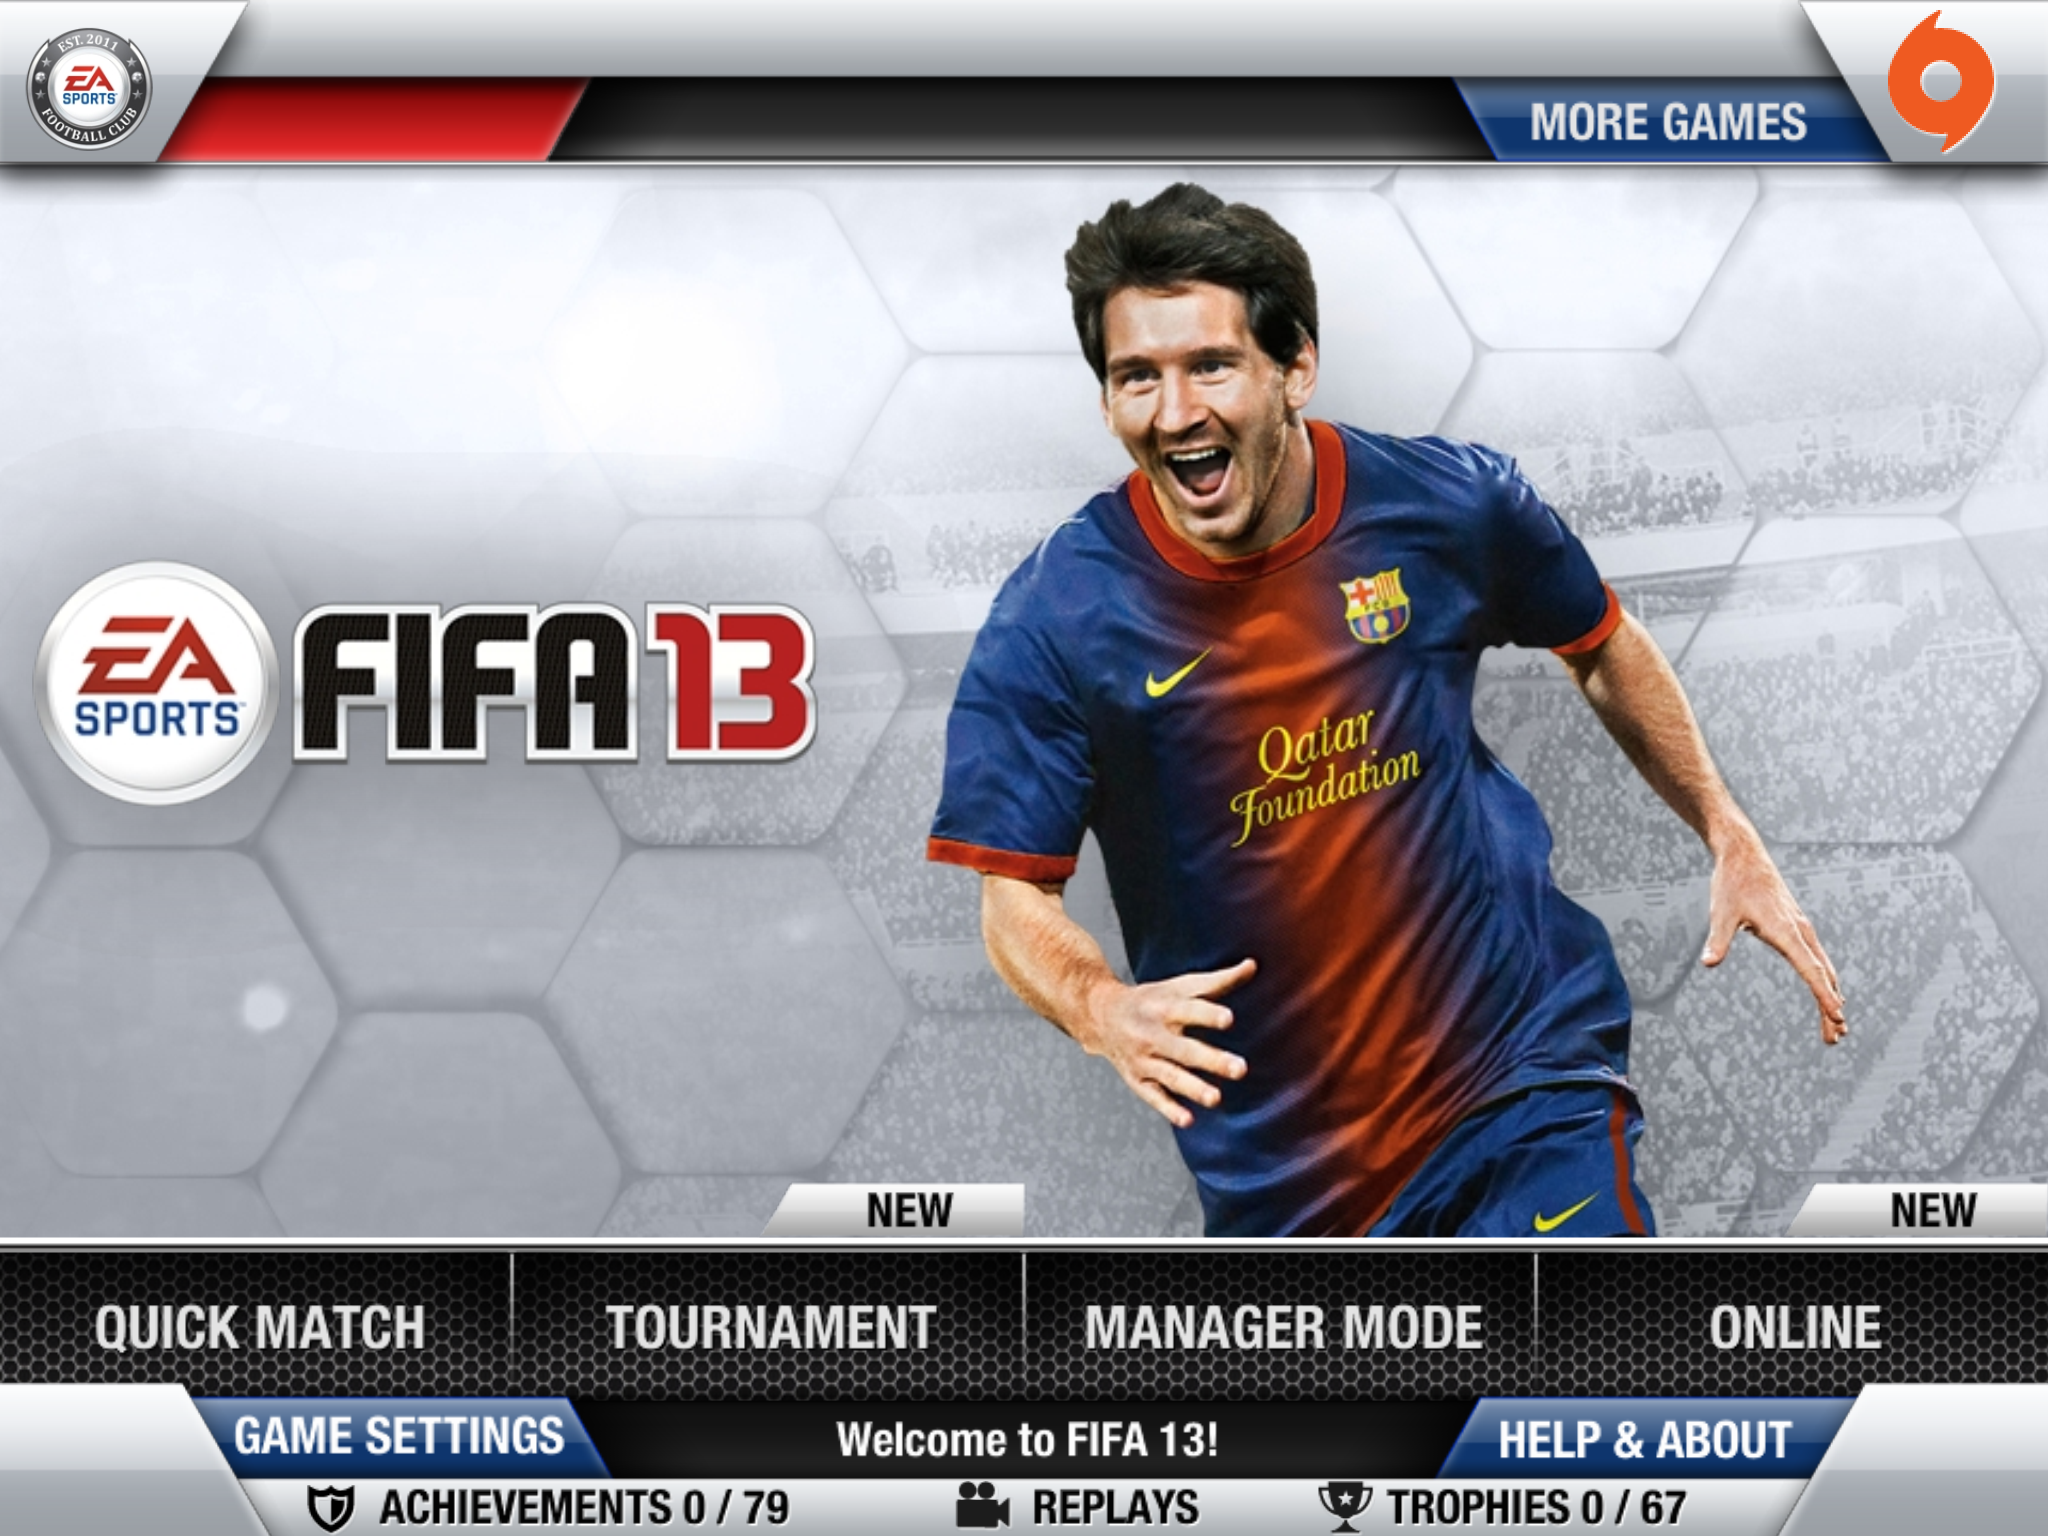 EA SPORTS is proud to announce FIFA 13 for the iPhone, iPad and iPod touch that connects fans to the real world football and enables them to play the most popular sports franchise against friends and other fans from all over the world.